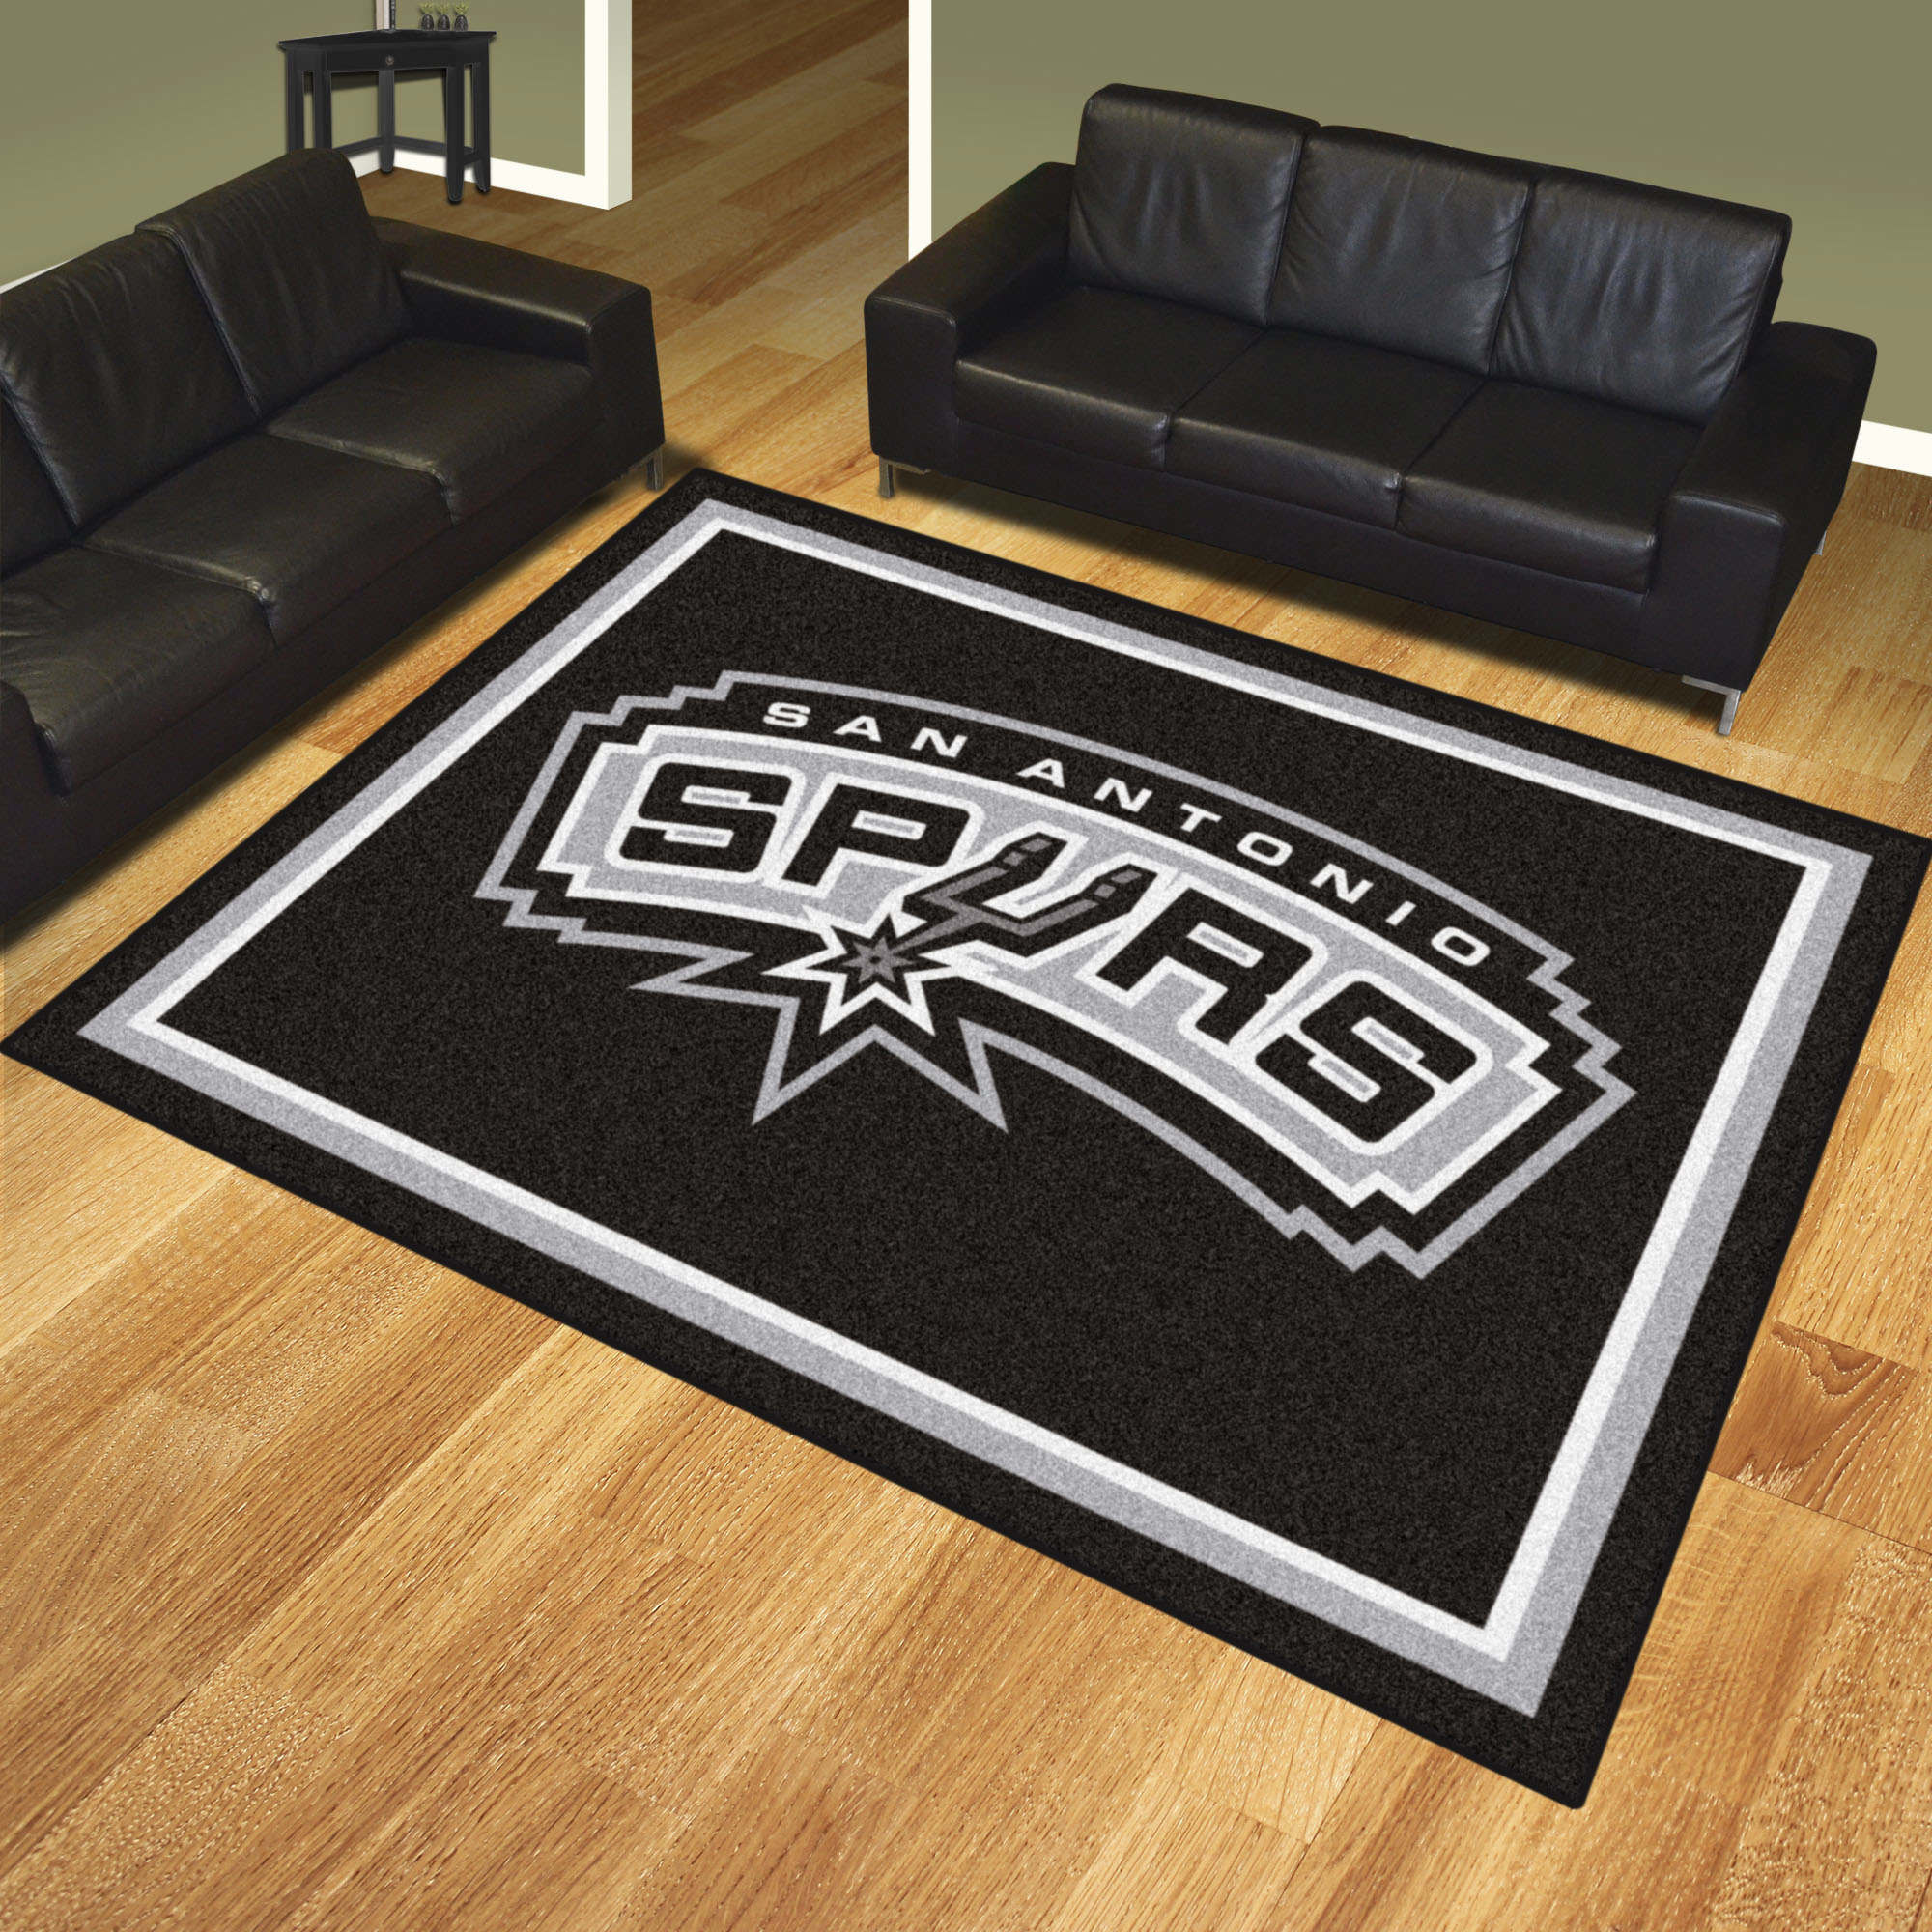 San Antonio Spurs Ultra Plush 8x10 Area Rug